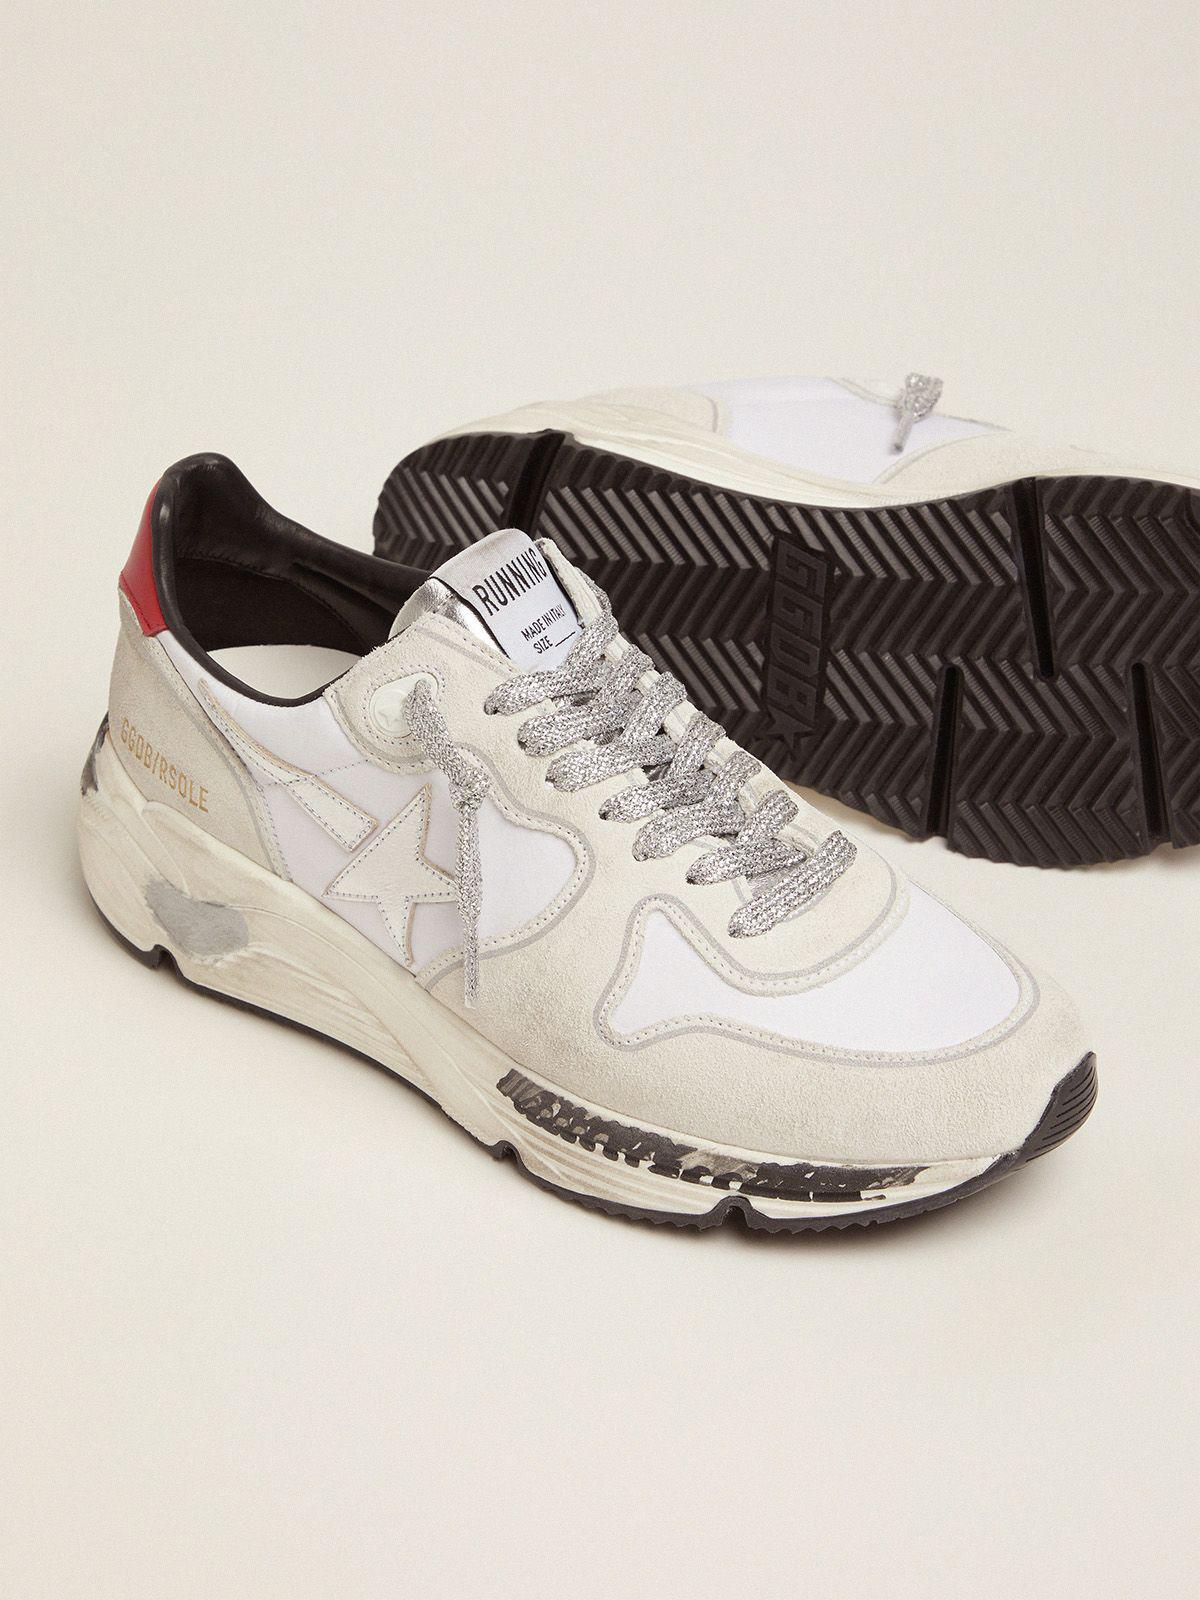 Running Sole sneakers with red heel tab and silver star 2